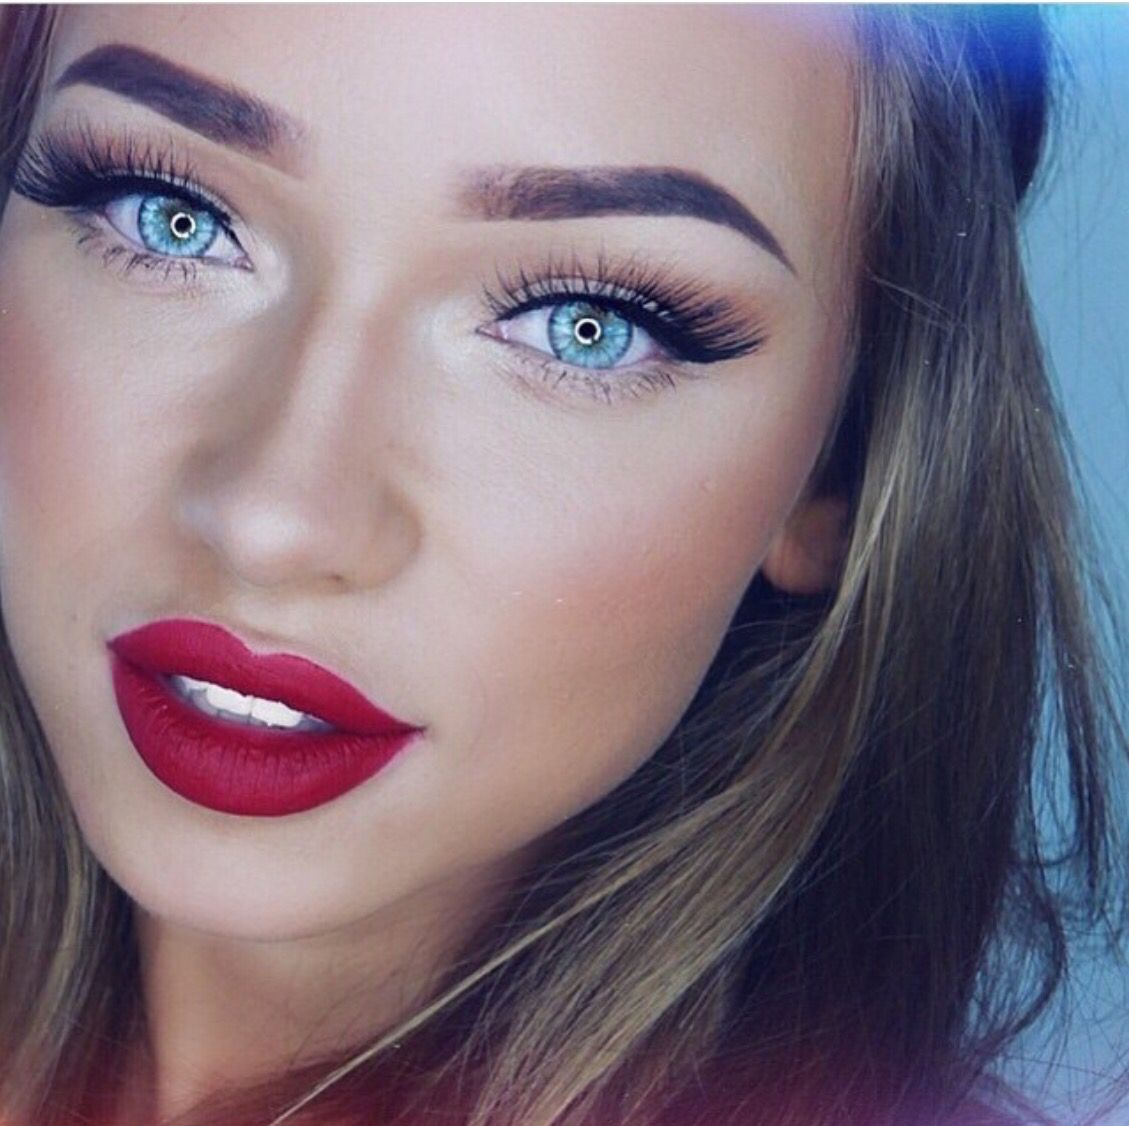 Red lipstick, best with bright blue eyes makeup